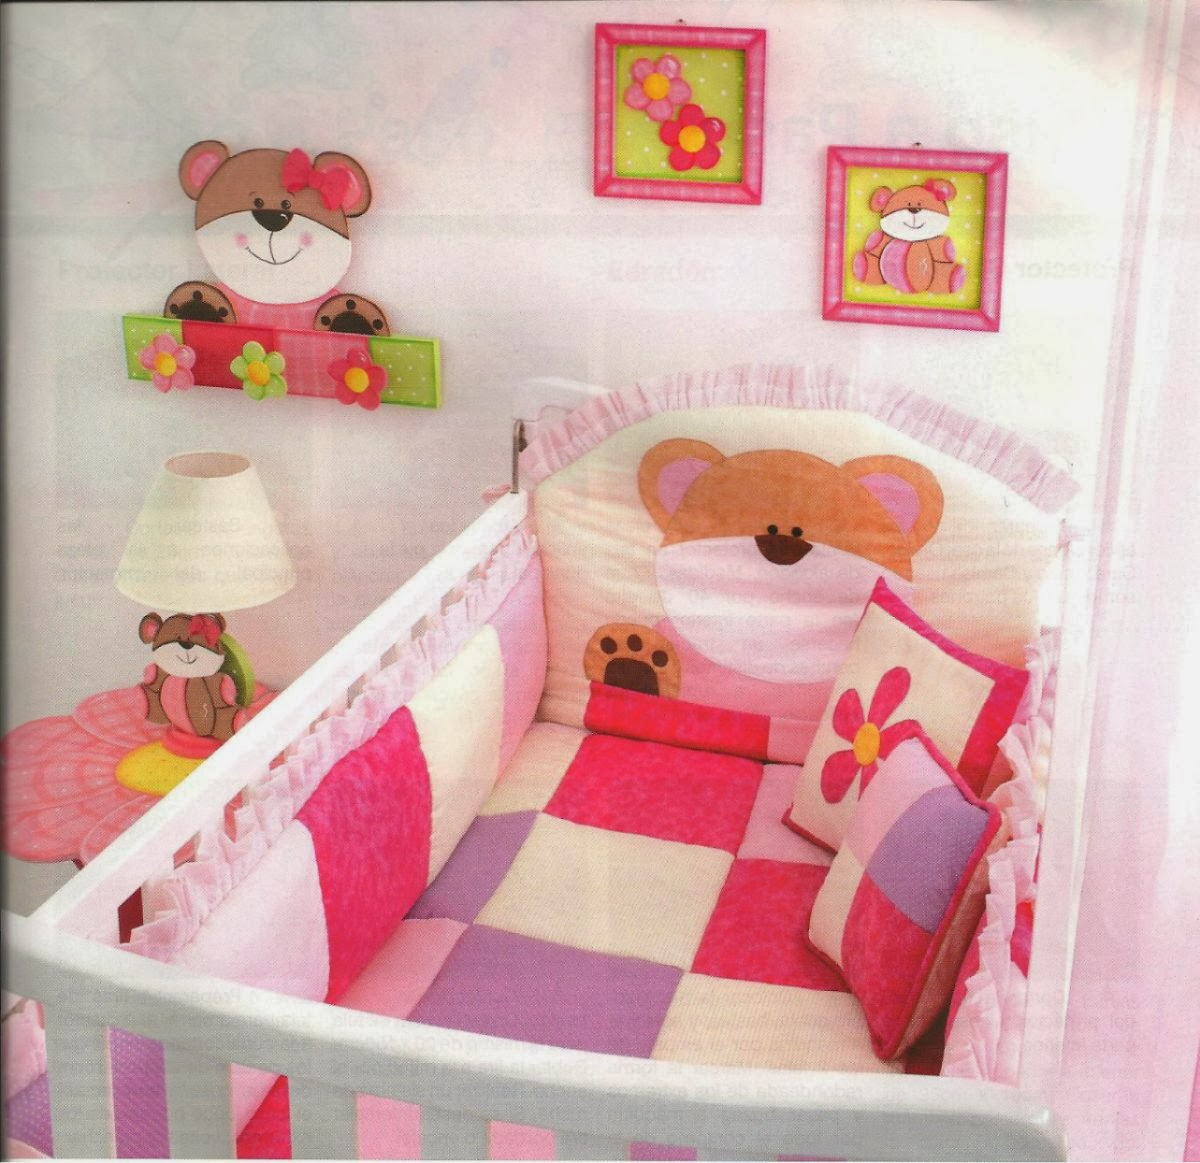 Imagenes fantasia y color como decorar el cuarto del bebe for Figuras de decoracion